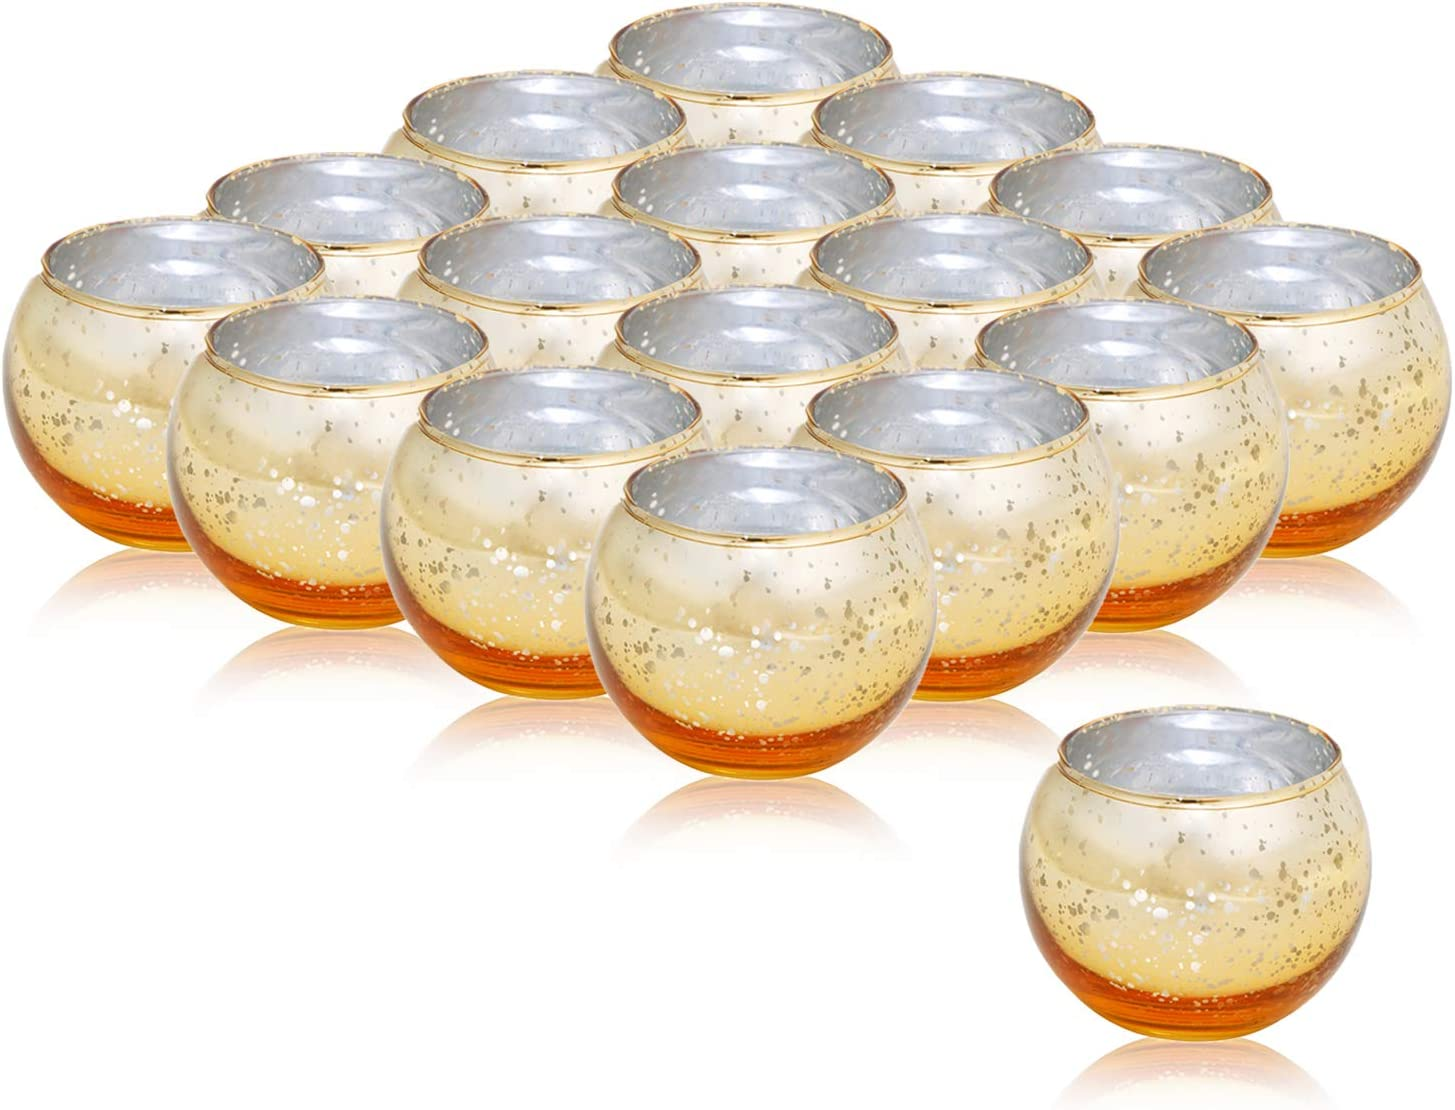 48Pcs Votive Candle Holders Mercury Glass Tealight Candle Holder,Perfect Centerpieces for Wedding, Party, Home Decor (gold2)